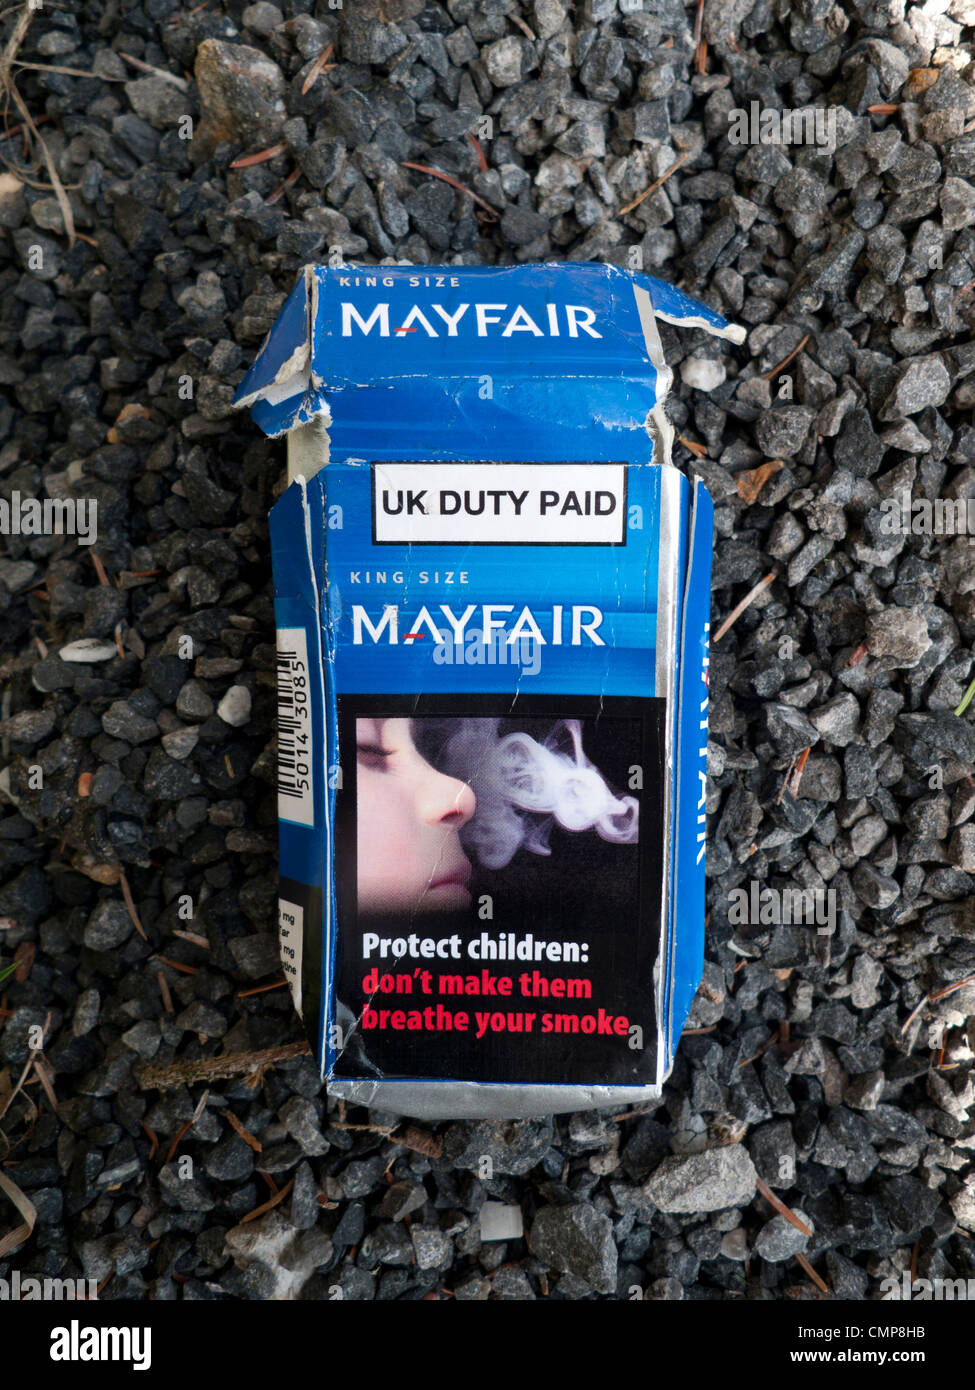 A discarded cigarette packet cigarettes depicting a child breathing smoke and a passive smoking danger to health - Stock Image